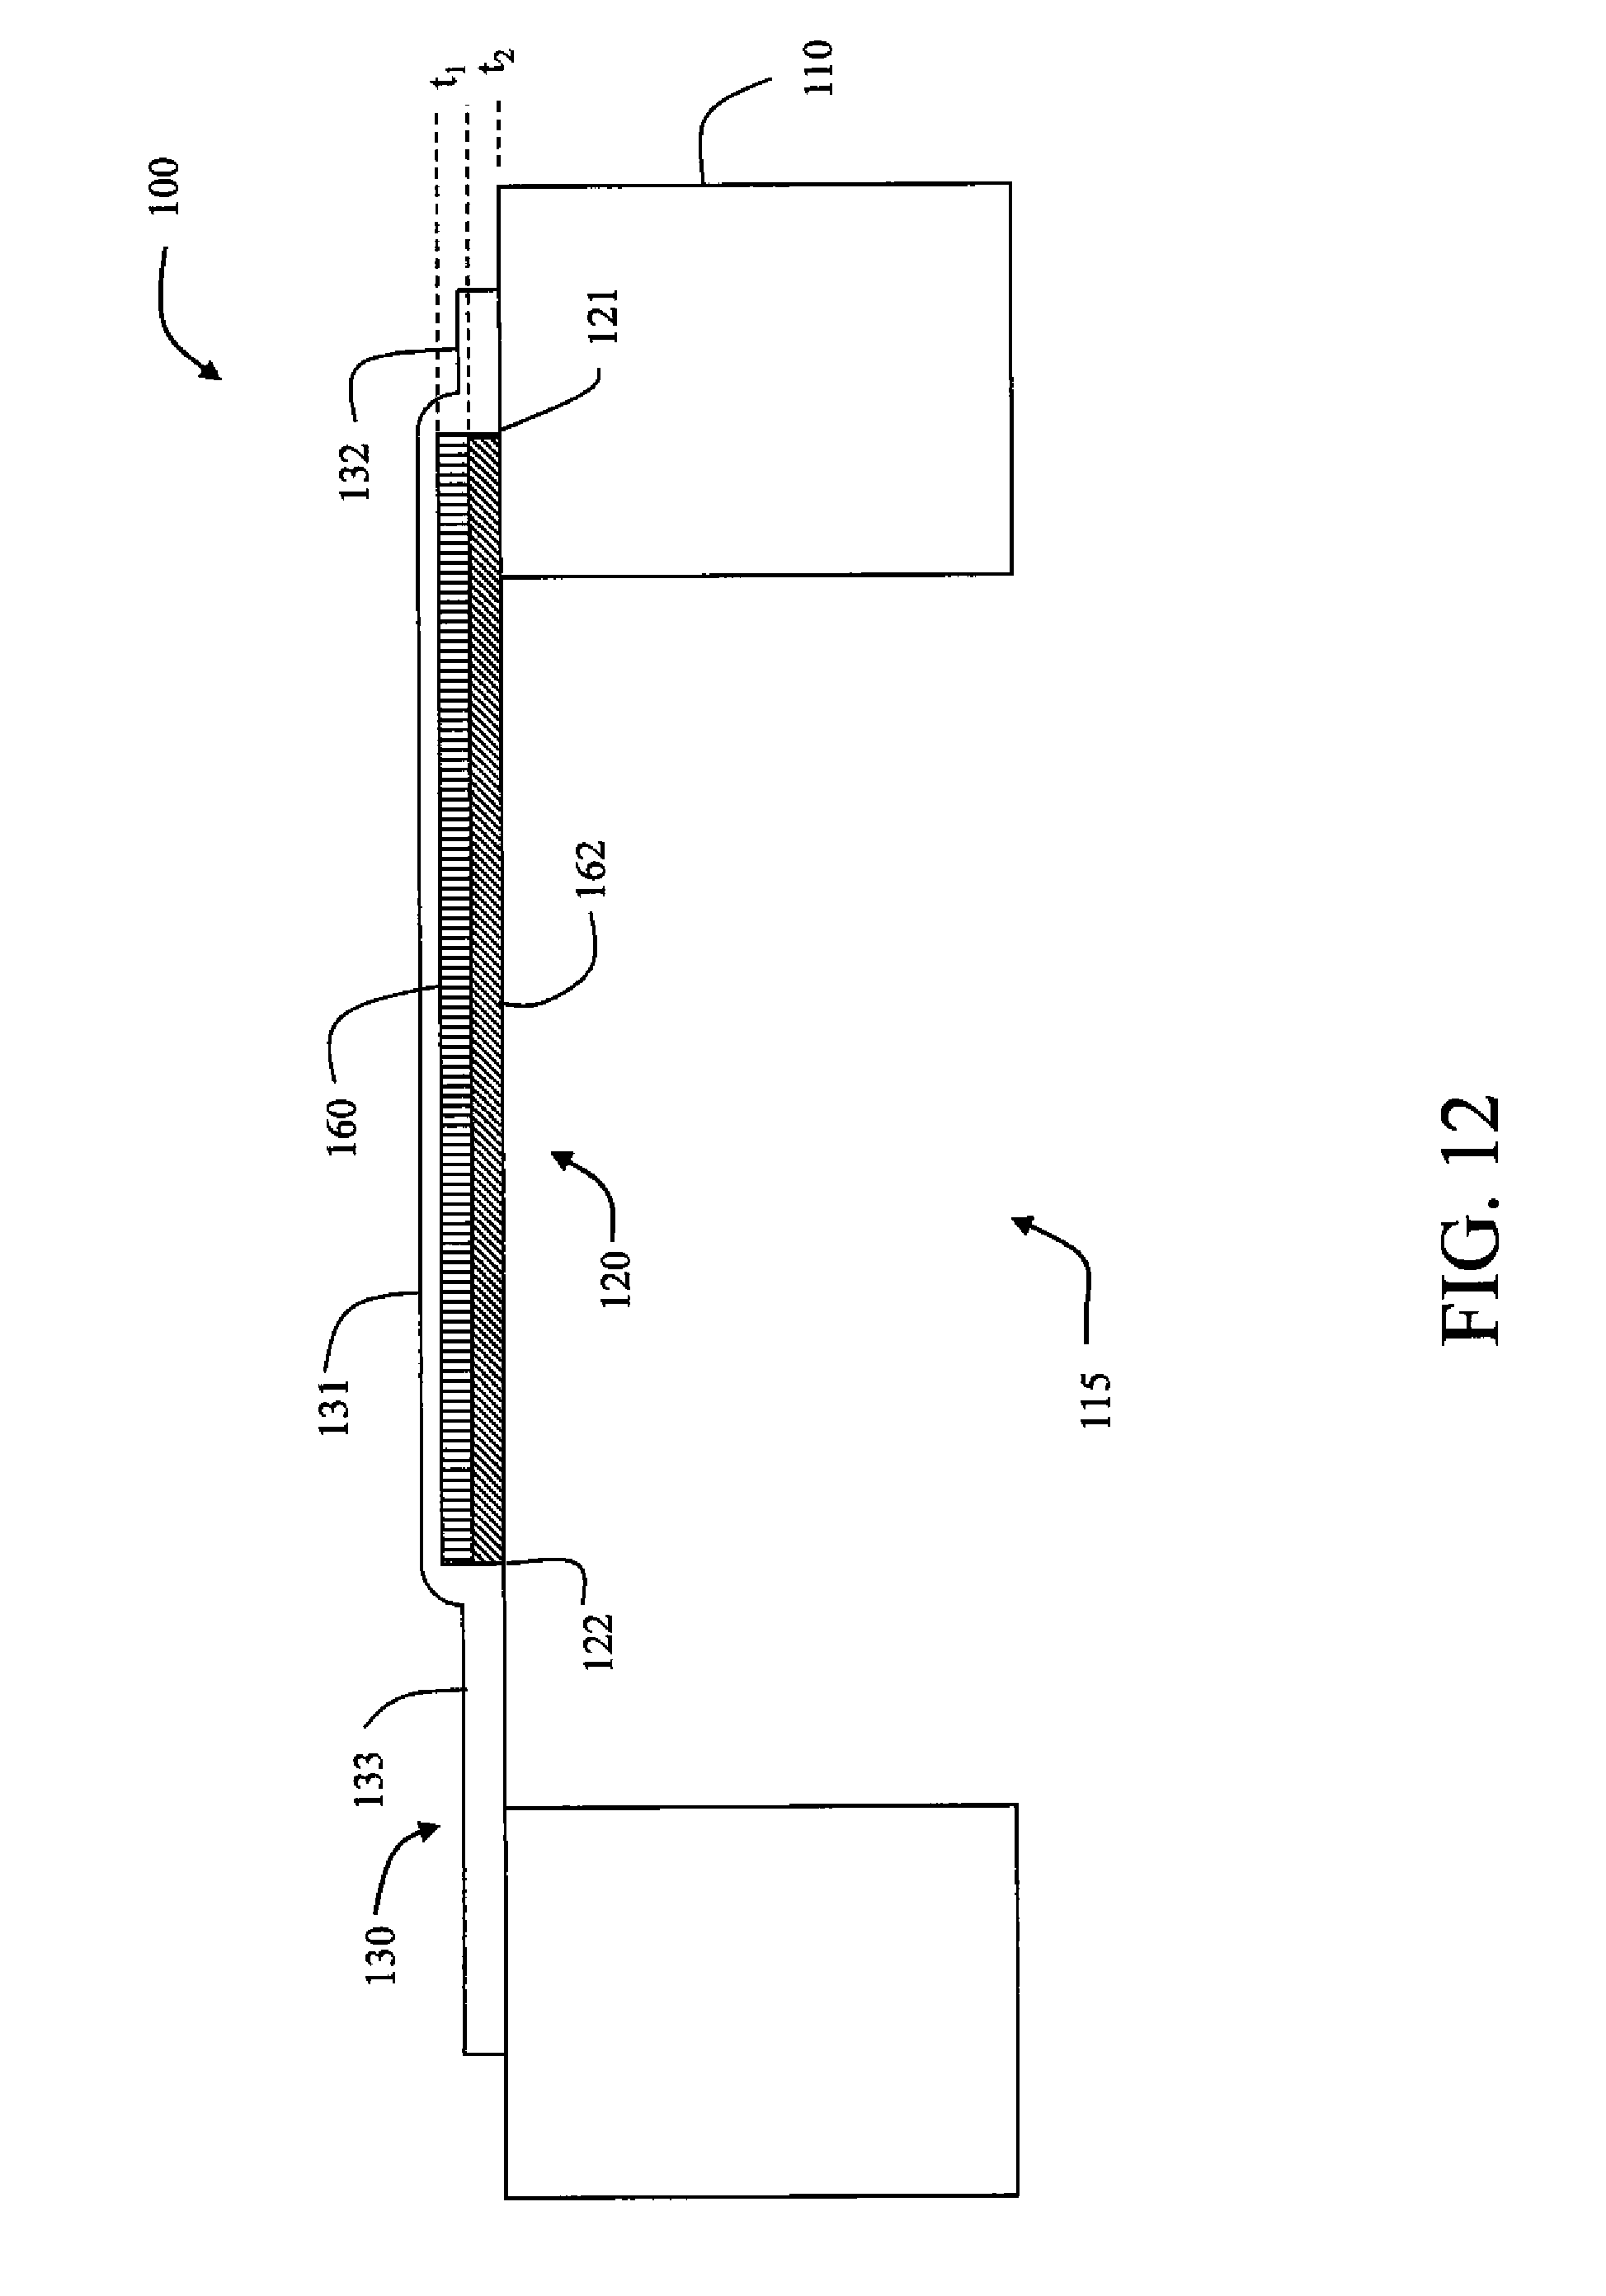 ultrasonic transmitter and receiver